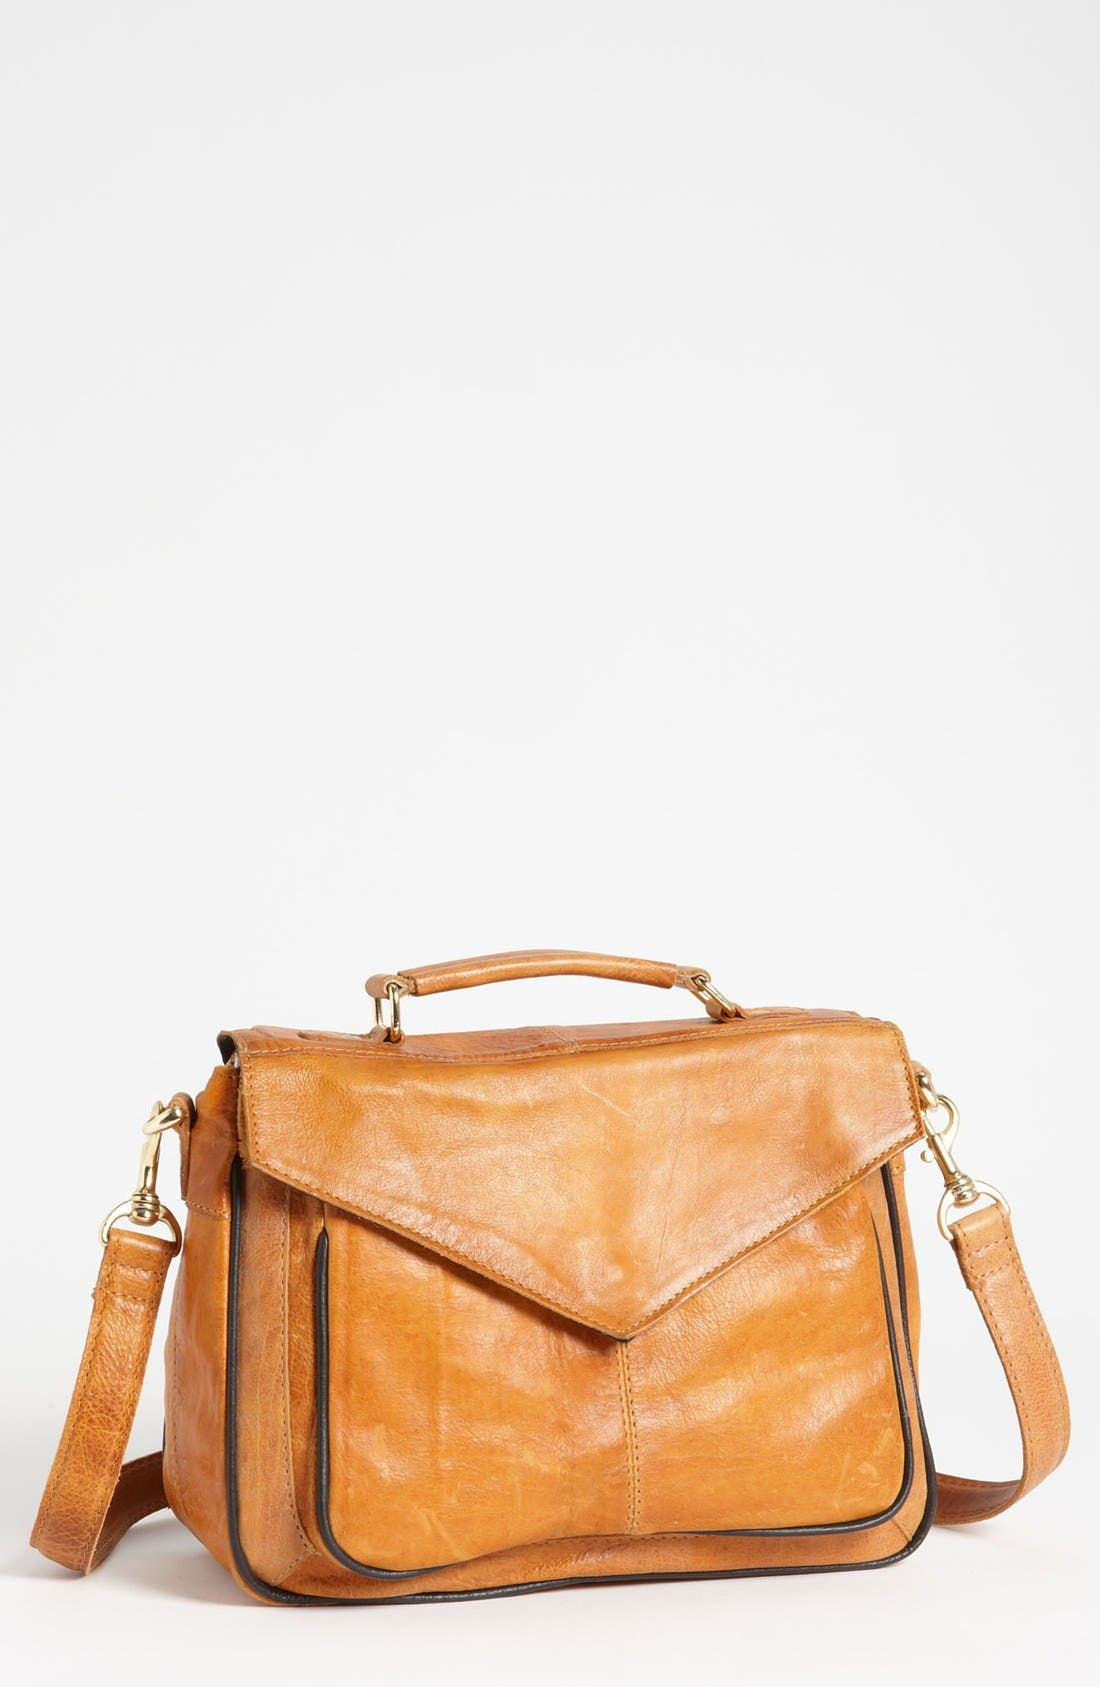 Alternate Image 1 Selected - Topshop '70s' Leather Satchel